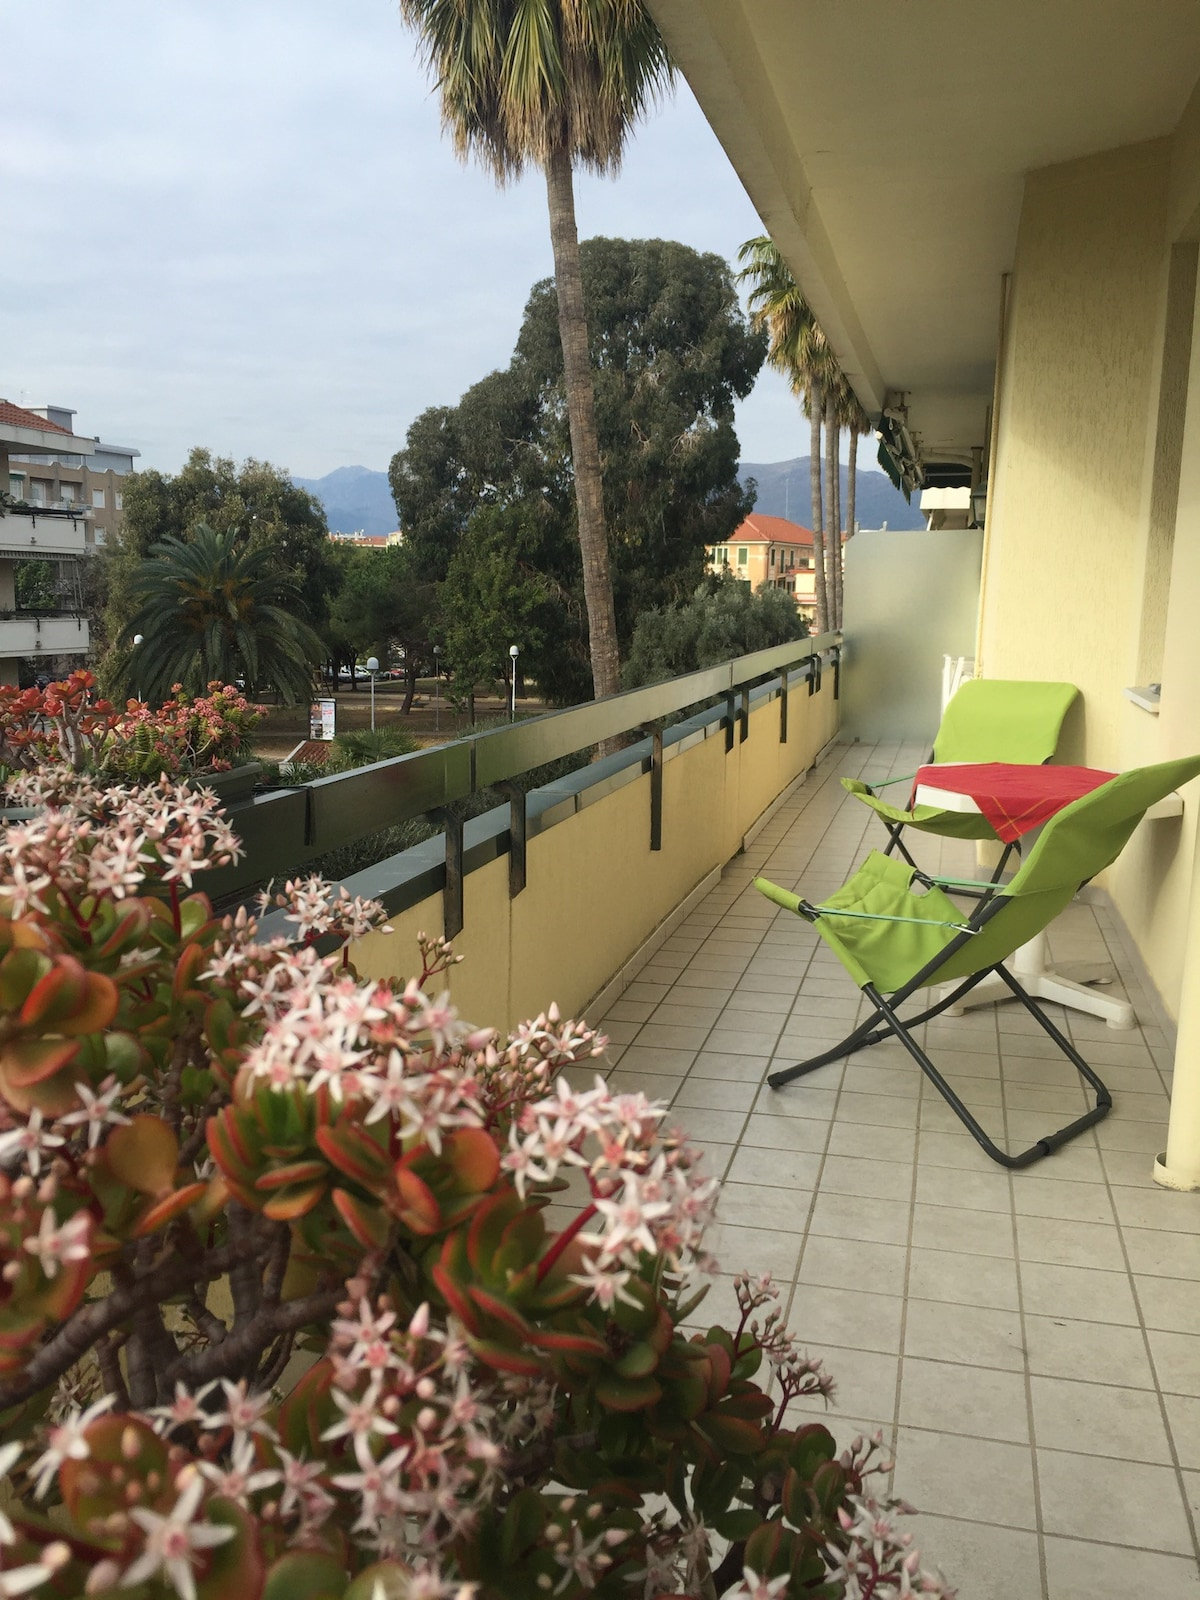 Rent an apartment in Albenga cheap price